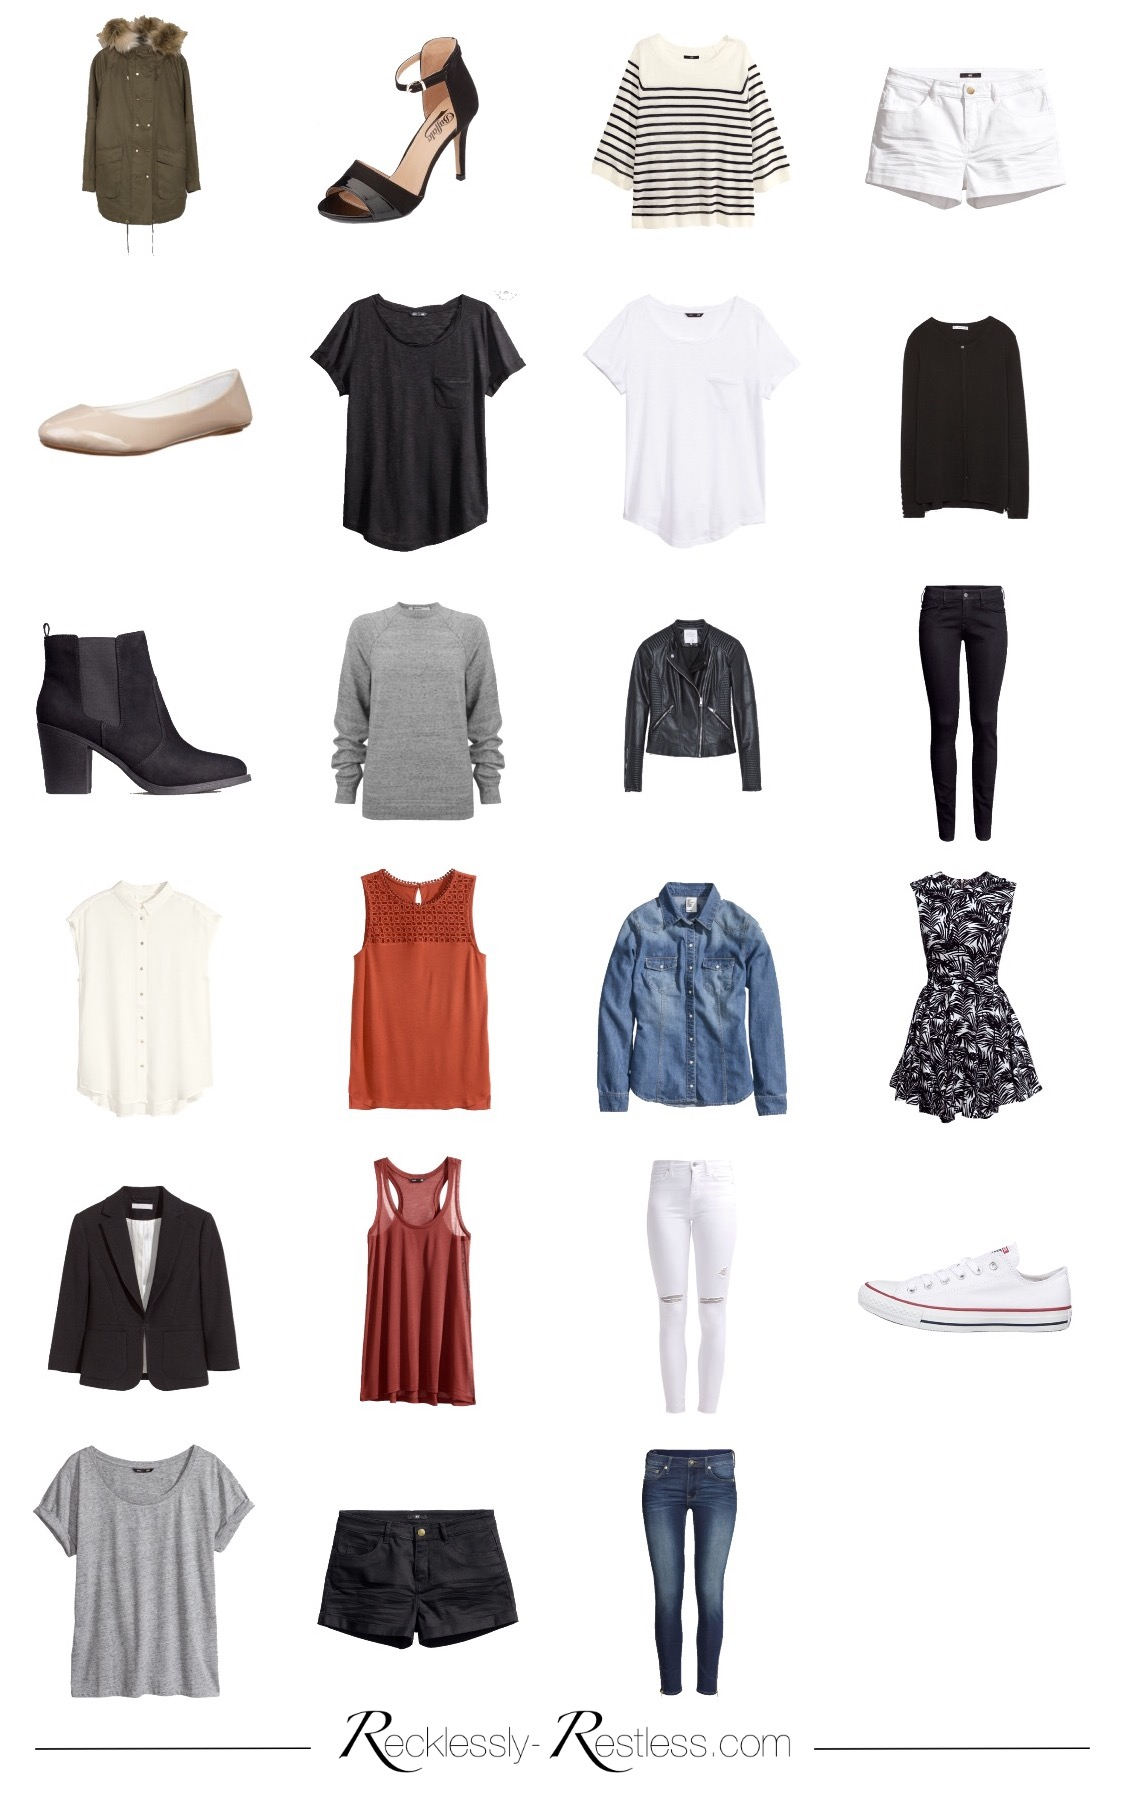 Capsule wardrobes archive recklessly for Minimalismus klamotten